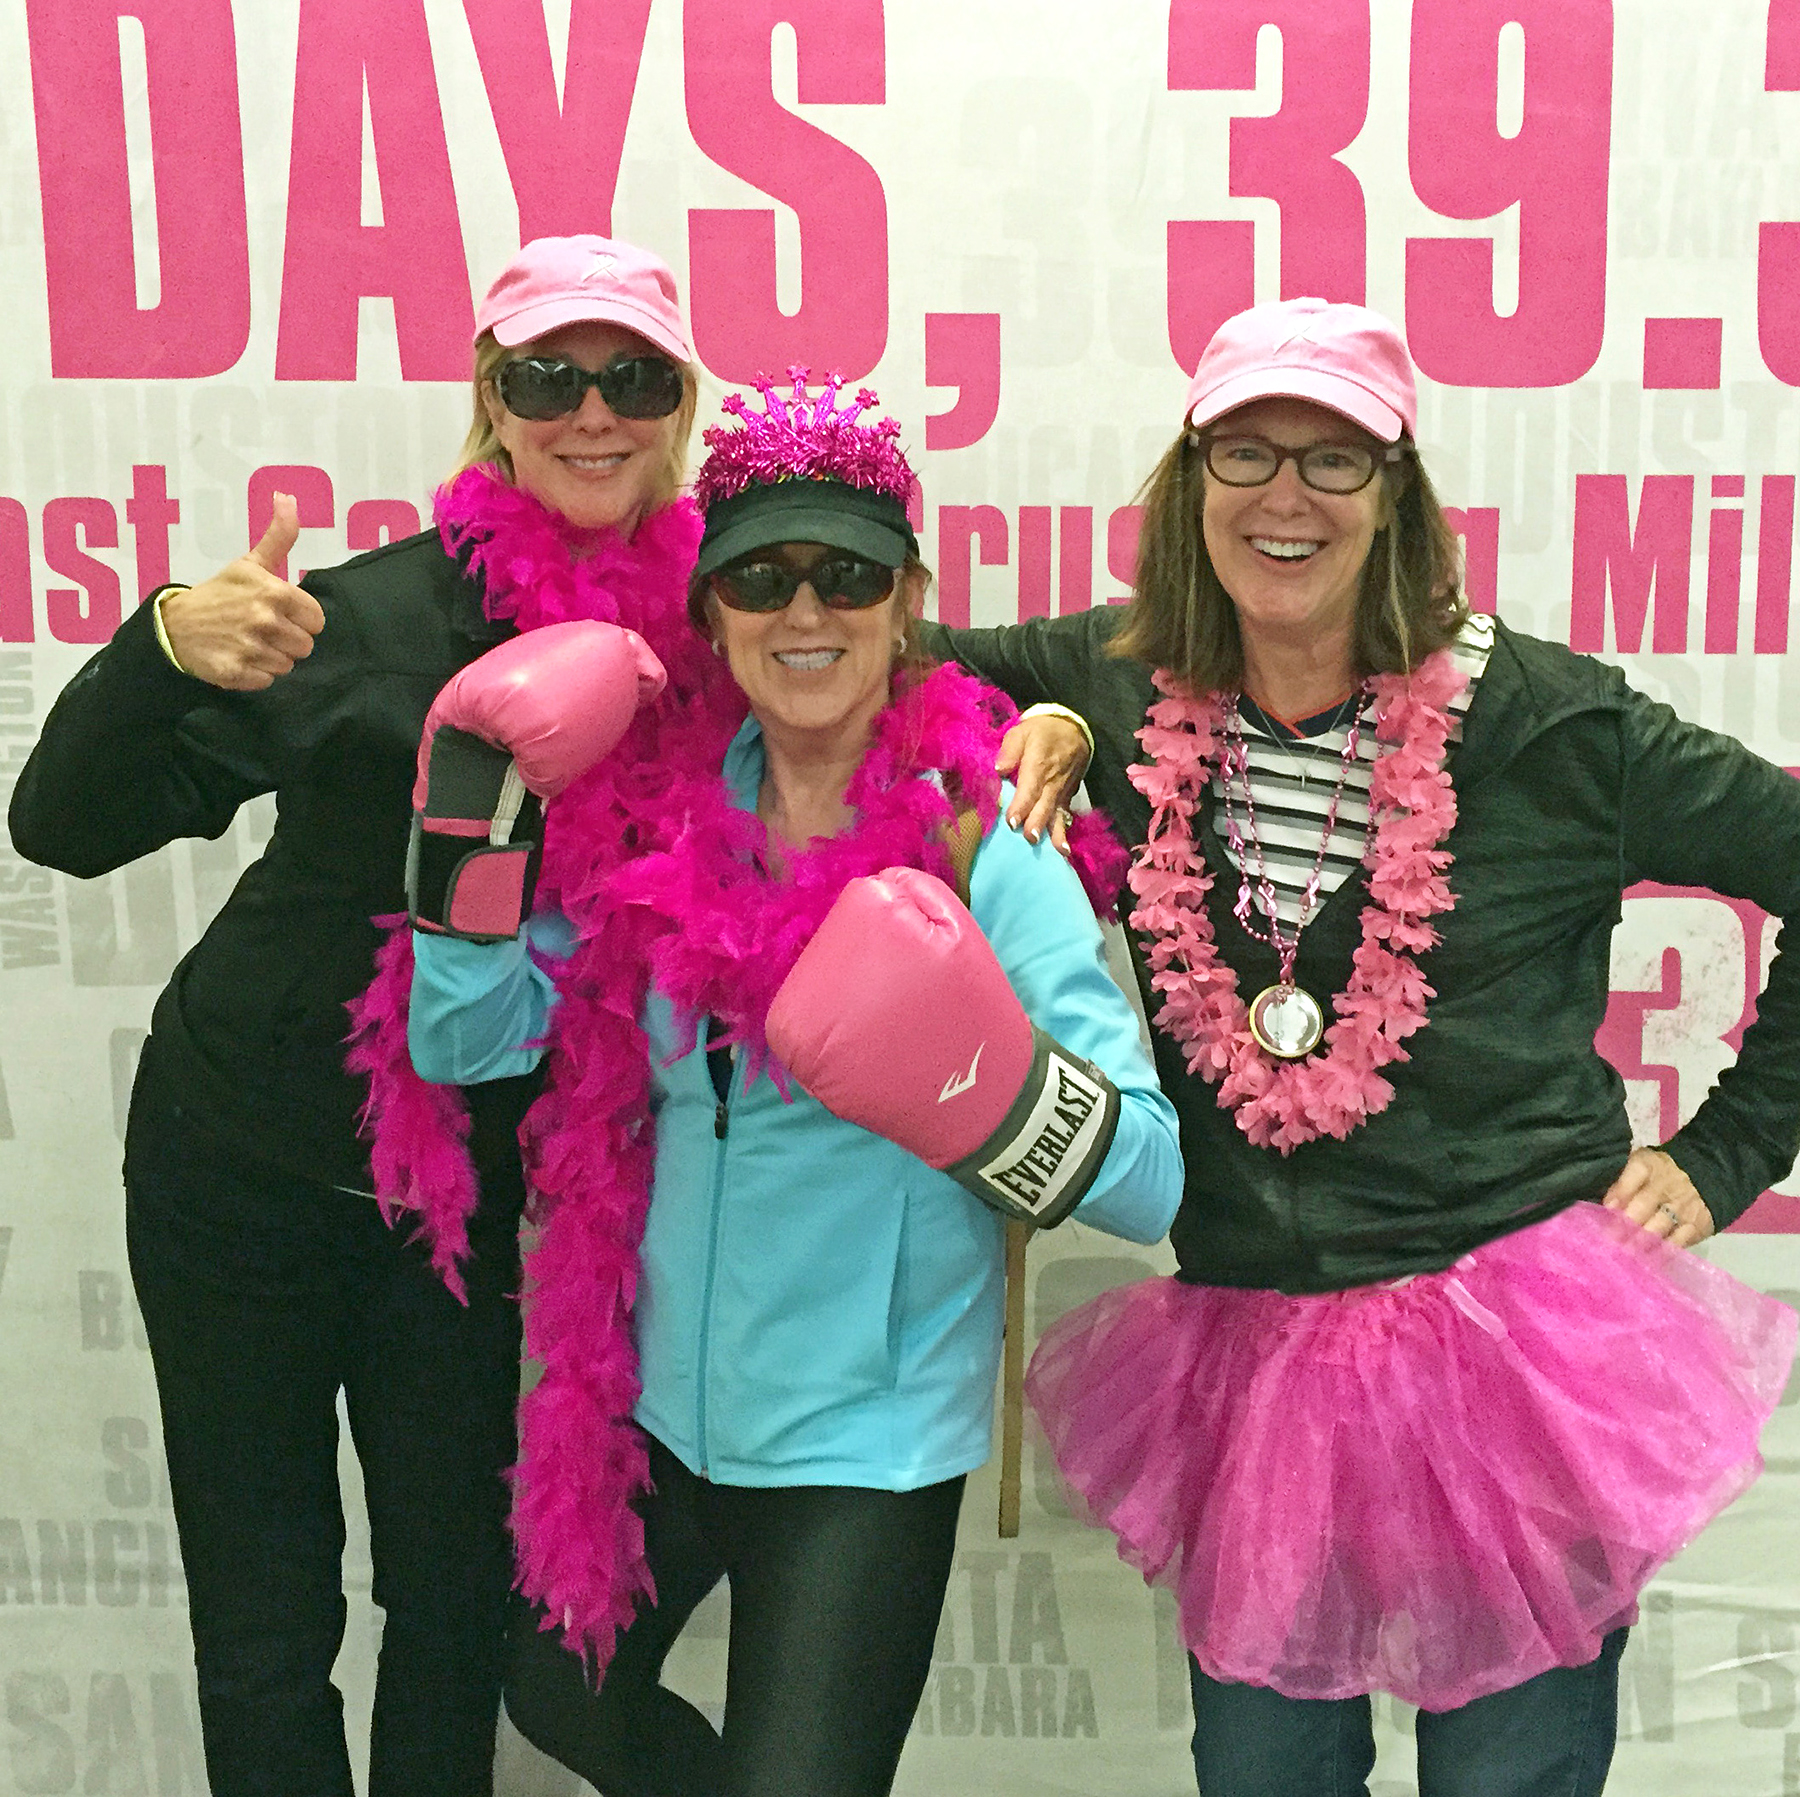 dr alisa gean walks 39 miles raises thousands to fight breast dr alisa gean poses center alongside her sisters suzanne hyle and marsha kendall all of whom walked to celebrate their mother shirley collins